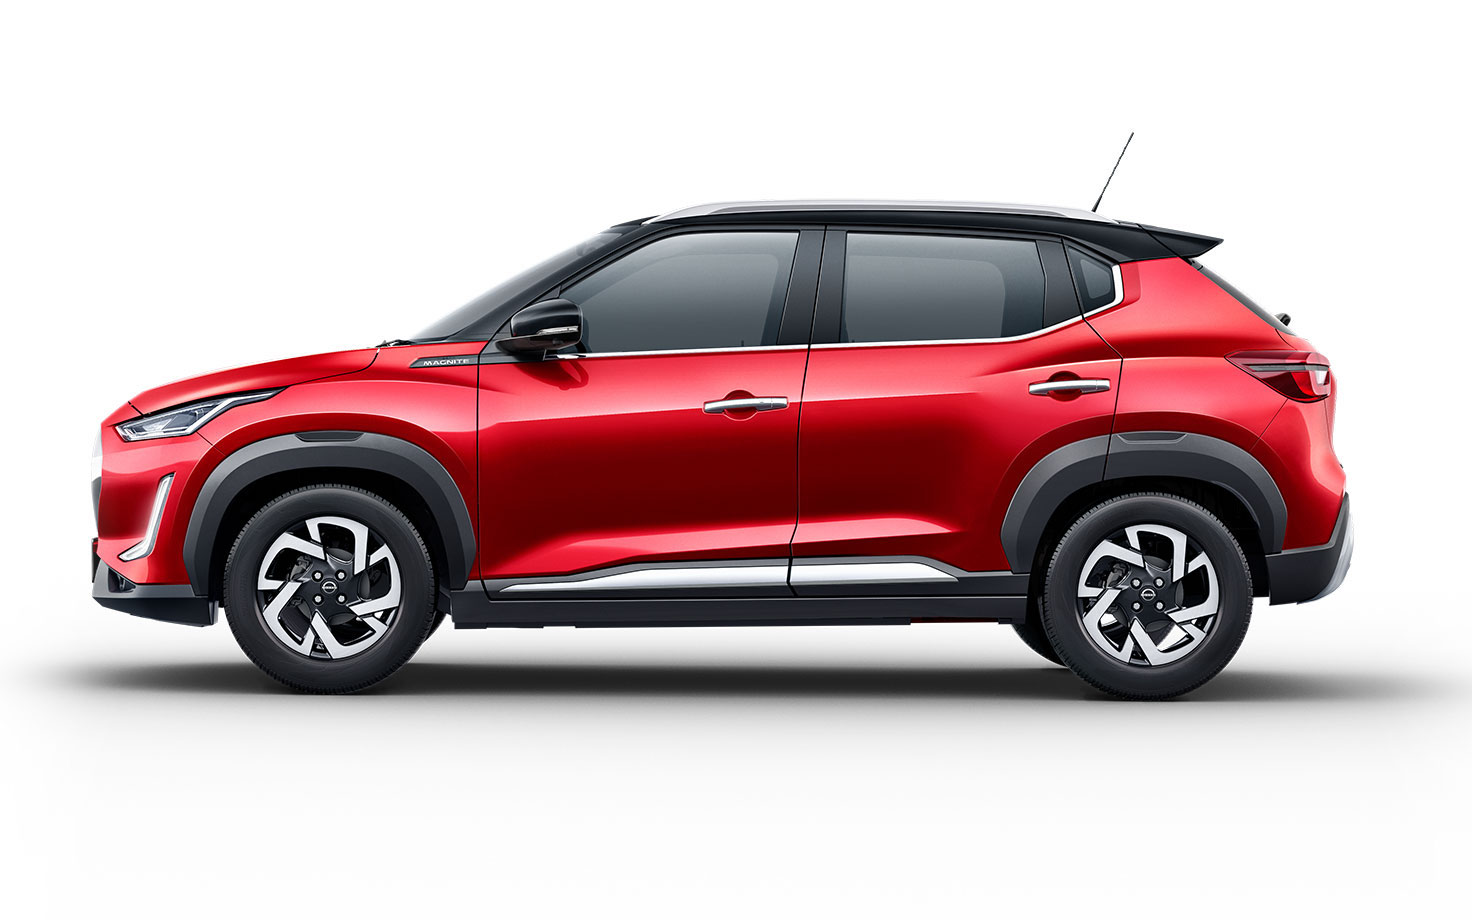 2020 Nissan Magnite Suv Price Starts At Inr 5 5 Lakh Turbo Petrol Starts At Inr 7 25 Lakh Shifting Gears